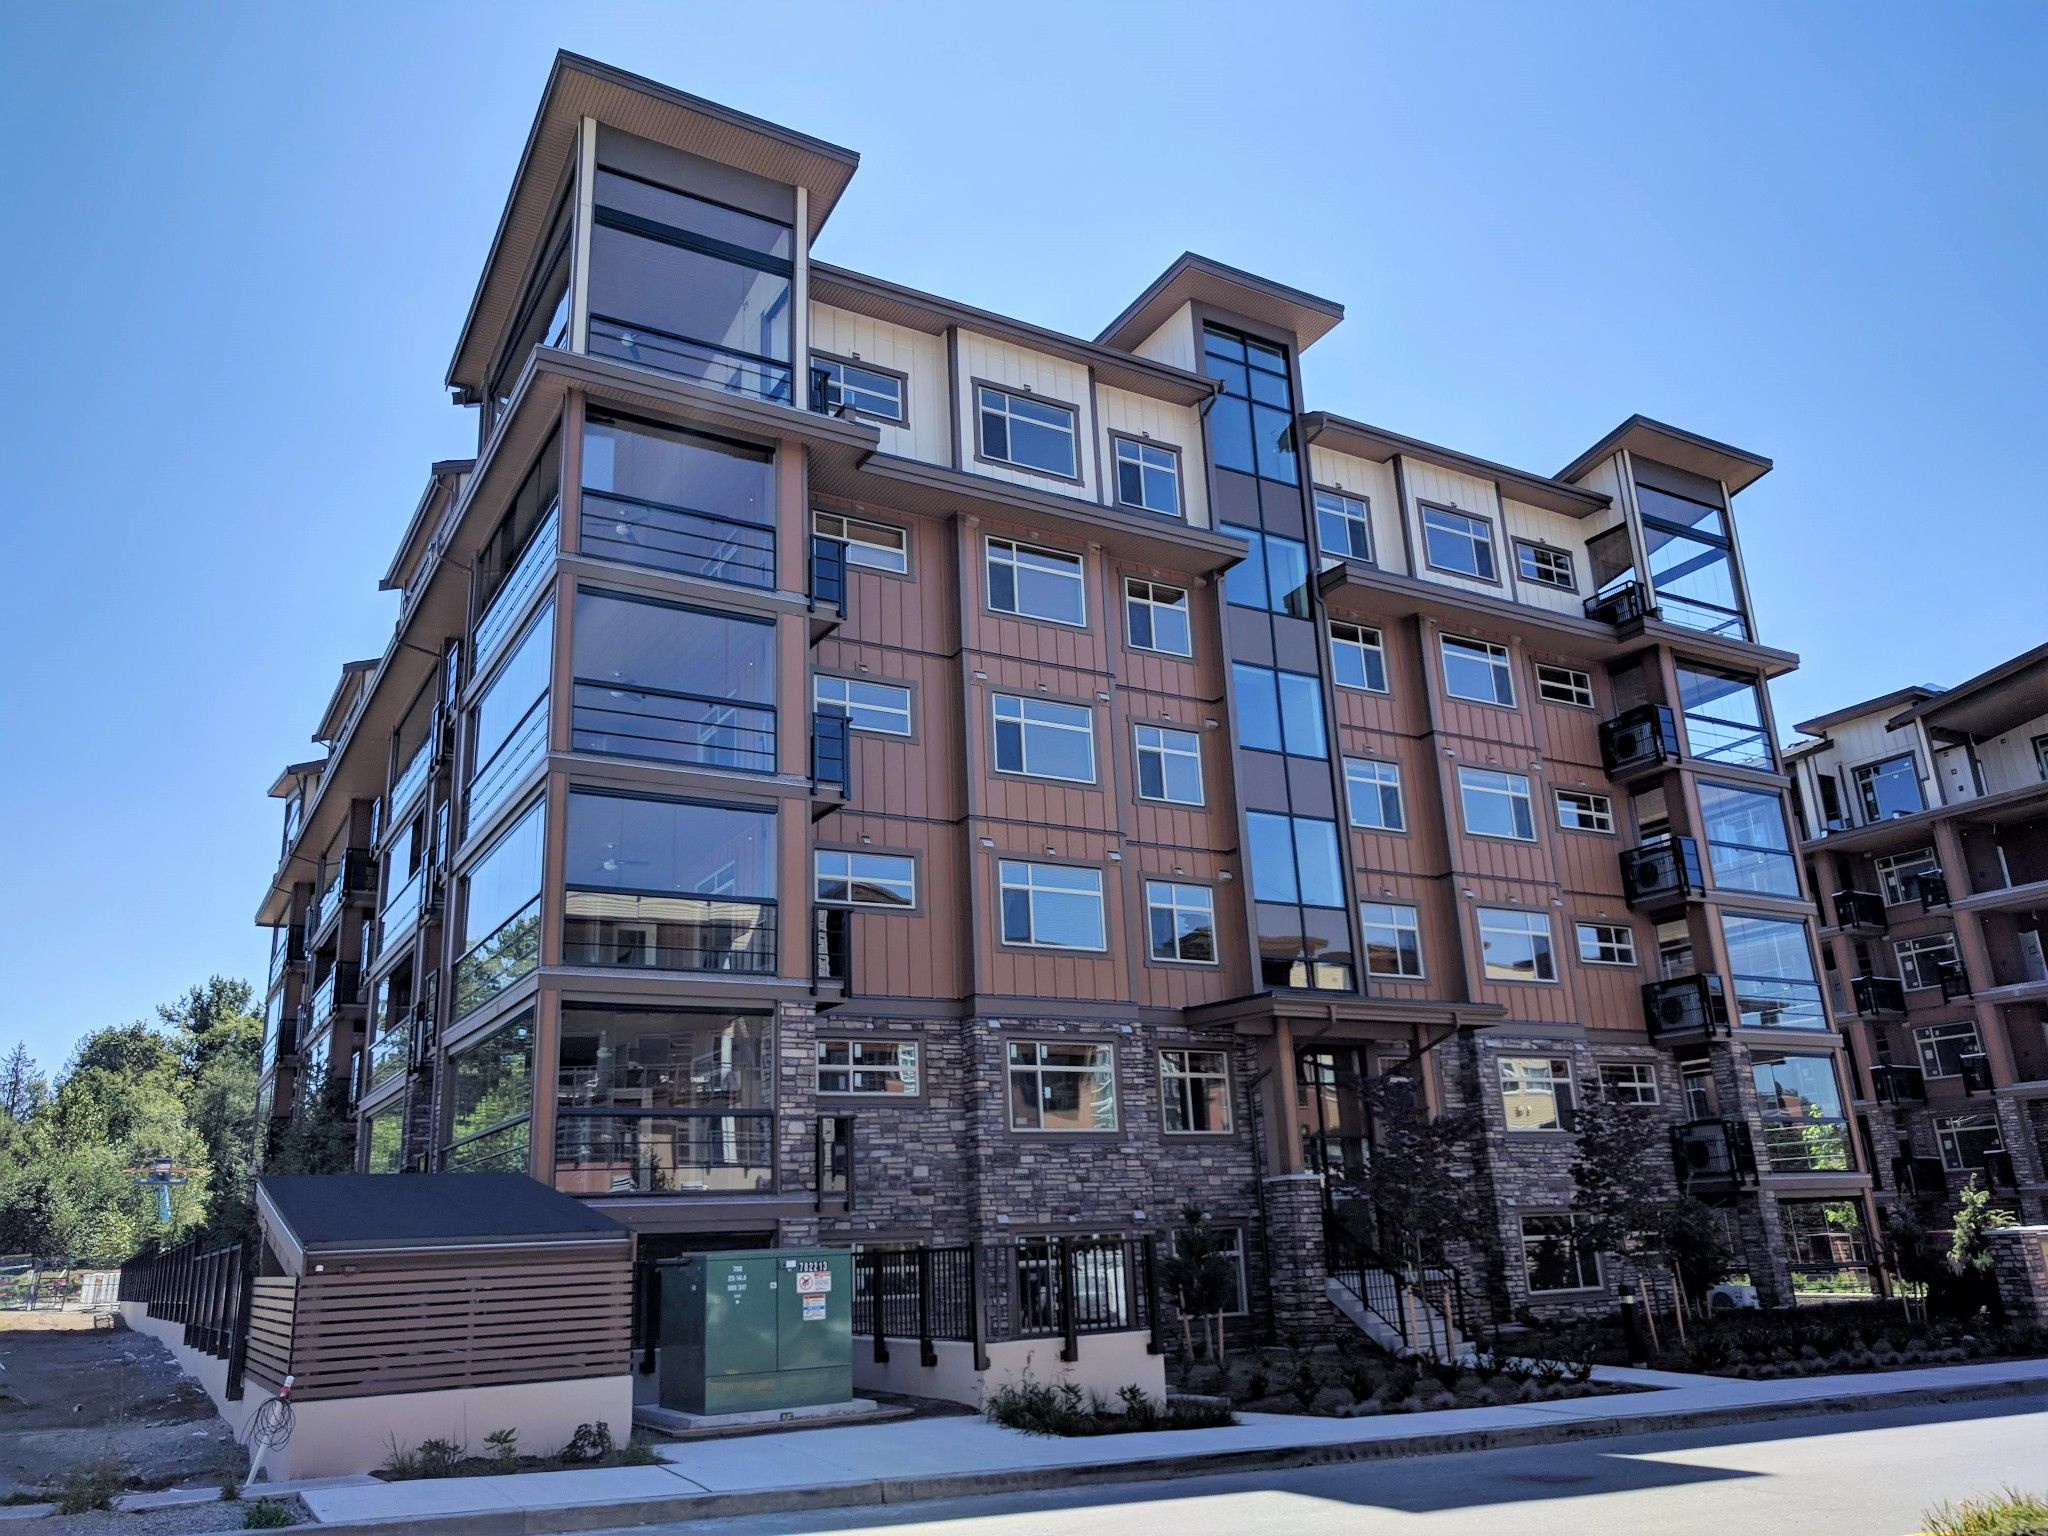 Main Photo: B-126 20716 WILLOUGHBY TOWN CENTRE DRIVE in Langley: Willoughby Heights Condo for sale : MLS®# R2362804